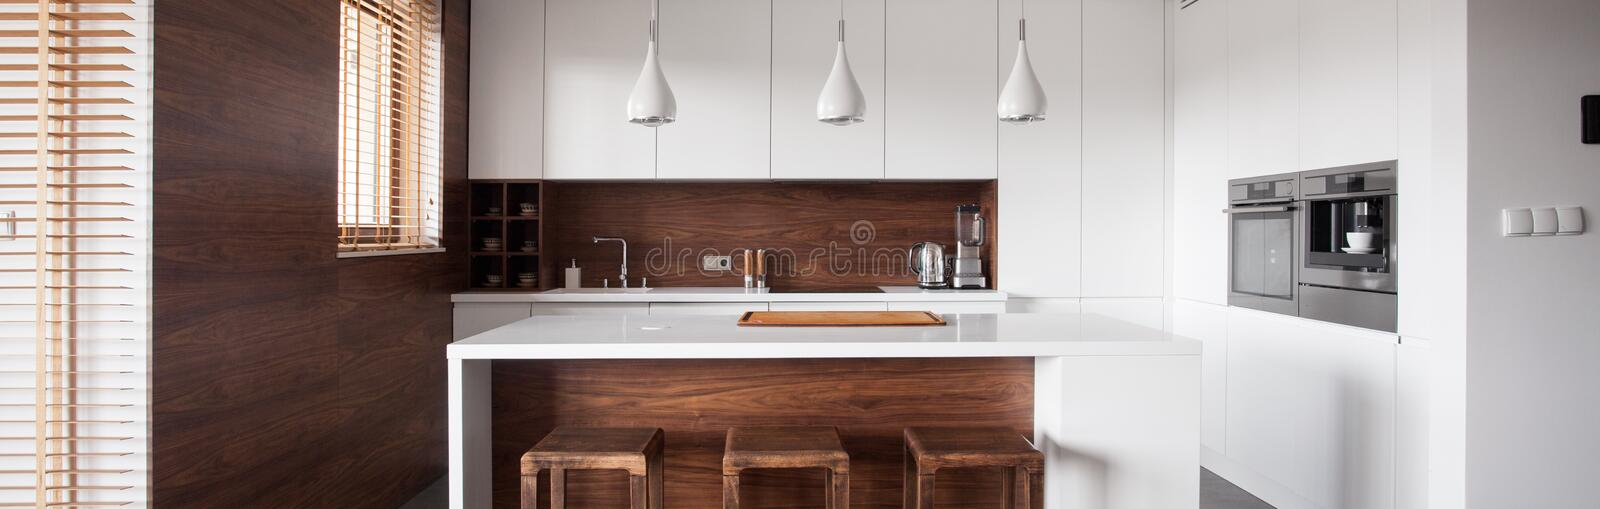 Kitchen island in wood kitchen stock images